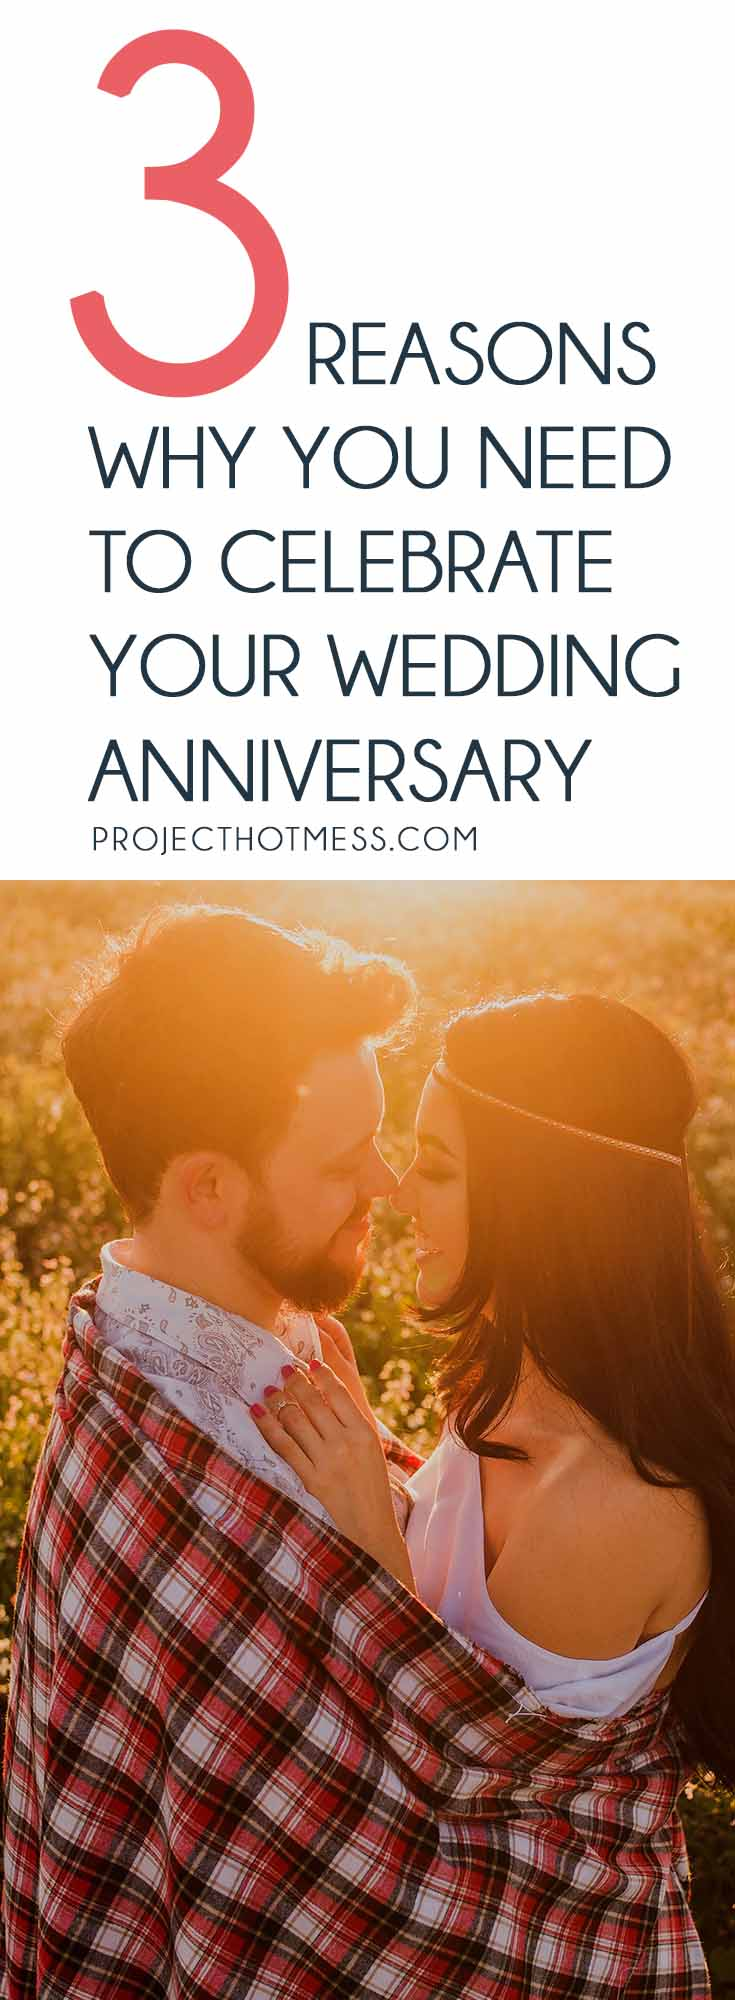 Do you buy each other gifts to celebrate your wedding anniversary? Or do you just avoid it altogether? Here's why it's so important to celebrate each year, and it's probably not the reasons you think. Relationships | Marriage | Partner | Marriage Advice | Marriage Goals | In Love | Love | Marriage Problems | Spice Up Your Marriage | Marriage Ideas | Happy Marriage | Relationship Goals | Relationship Advice | Relationship Tips | Anniversary | Wedding Anniversary | Anniversary Ideas | Celebrate Your Anniversary